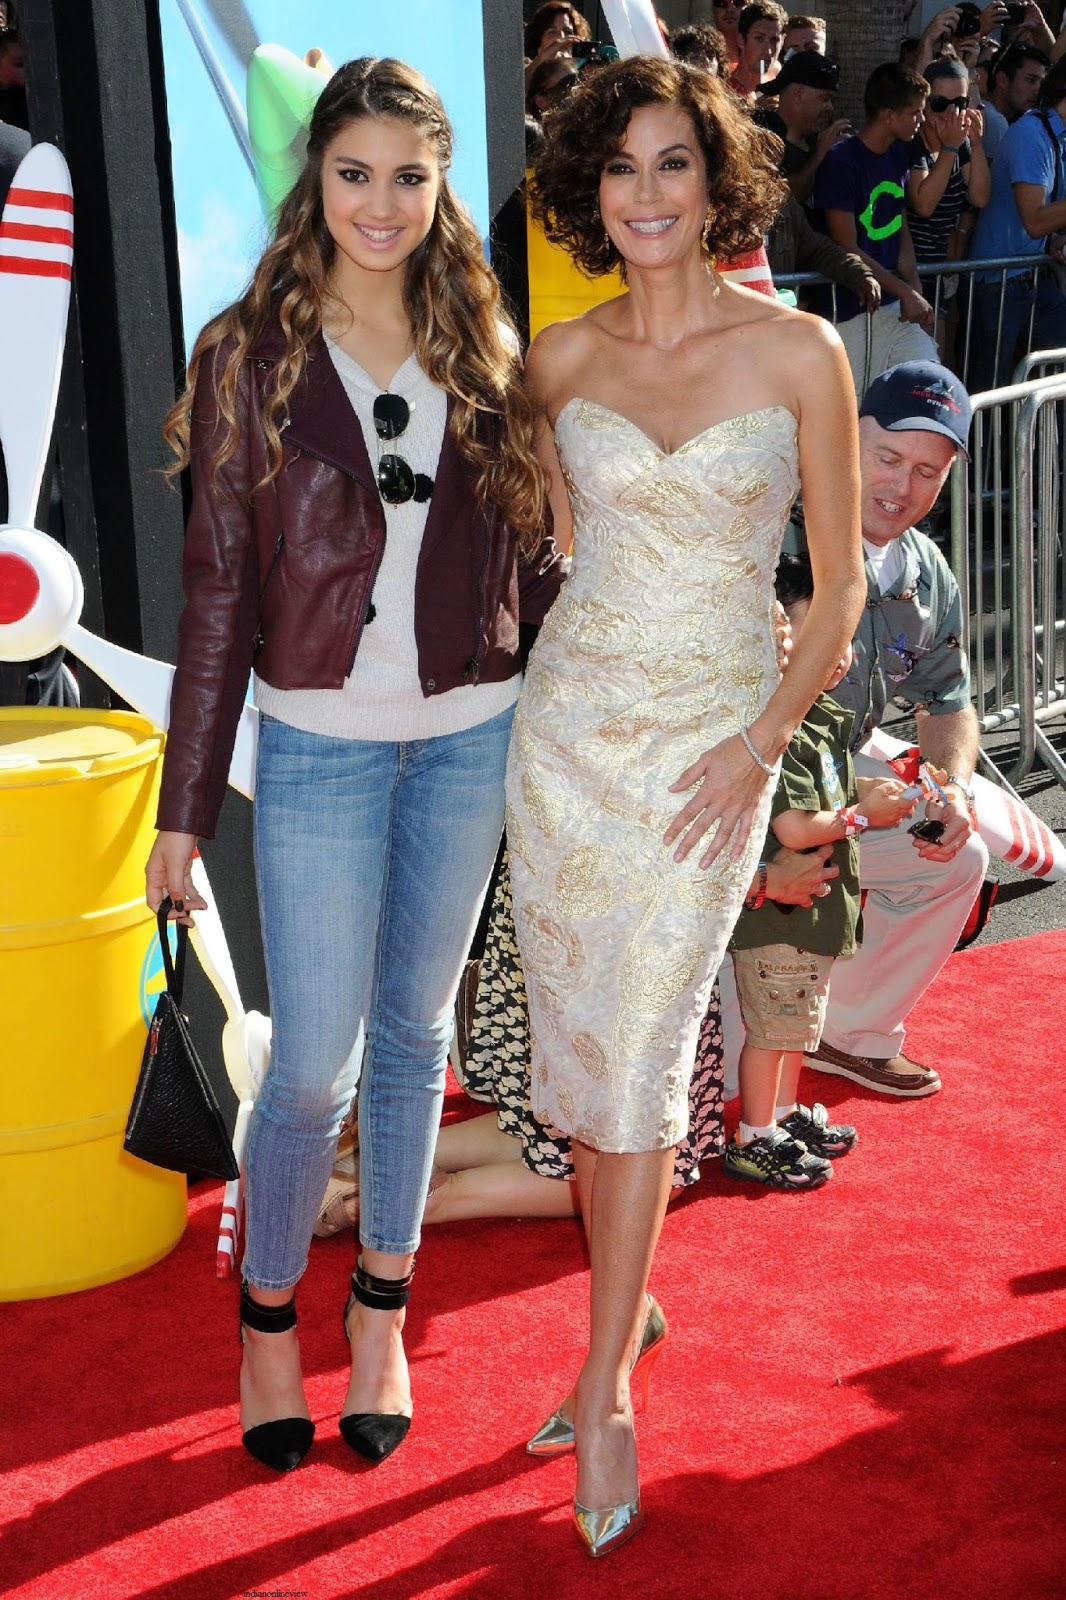 TERI HATCHER HAS WITH HER 16 YEAR OLD DAUGHTER EMERSON ...